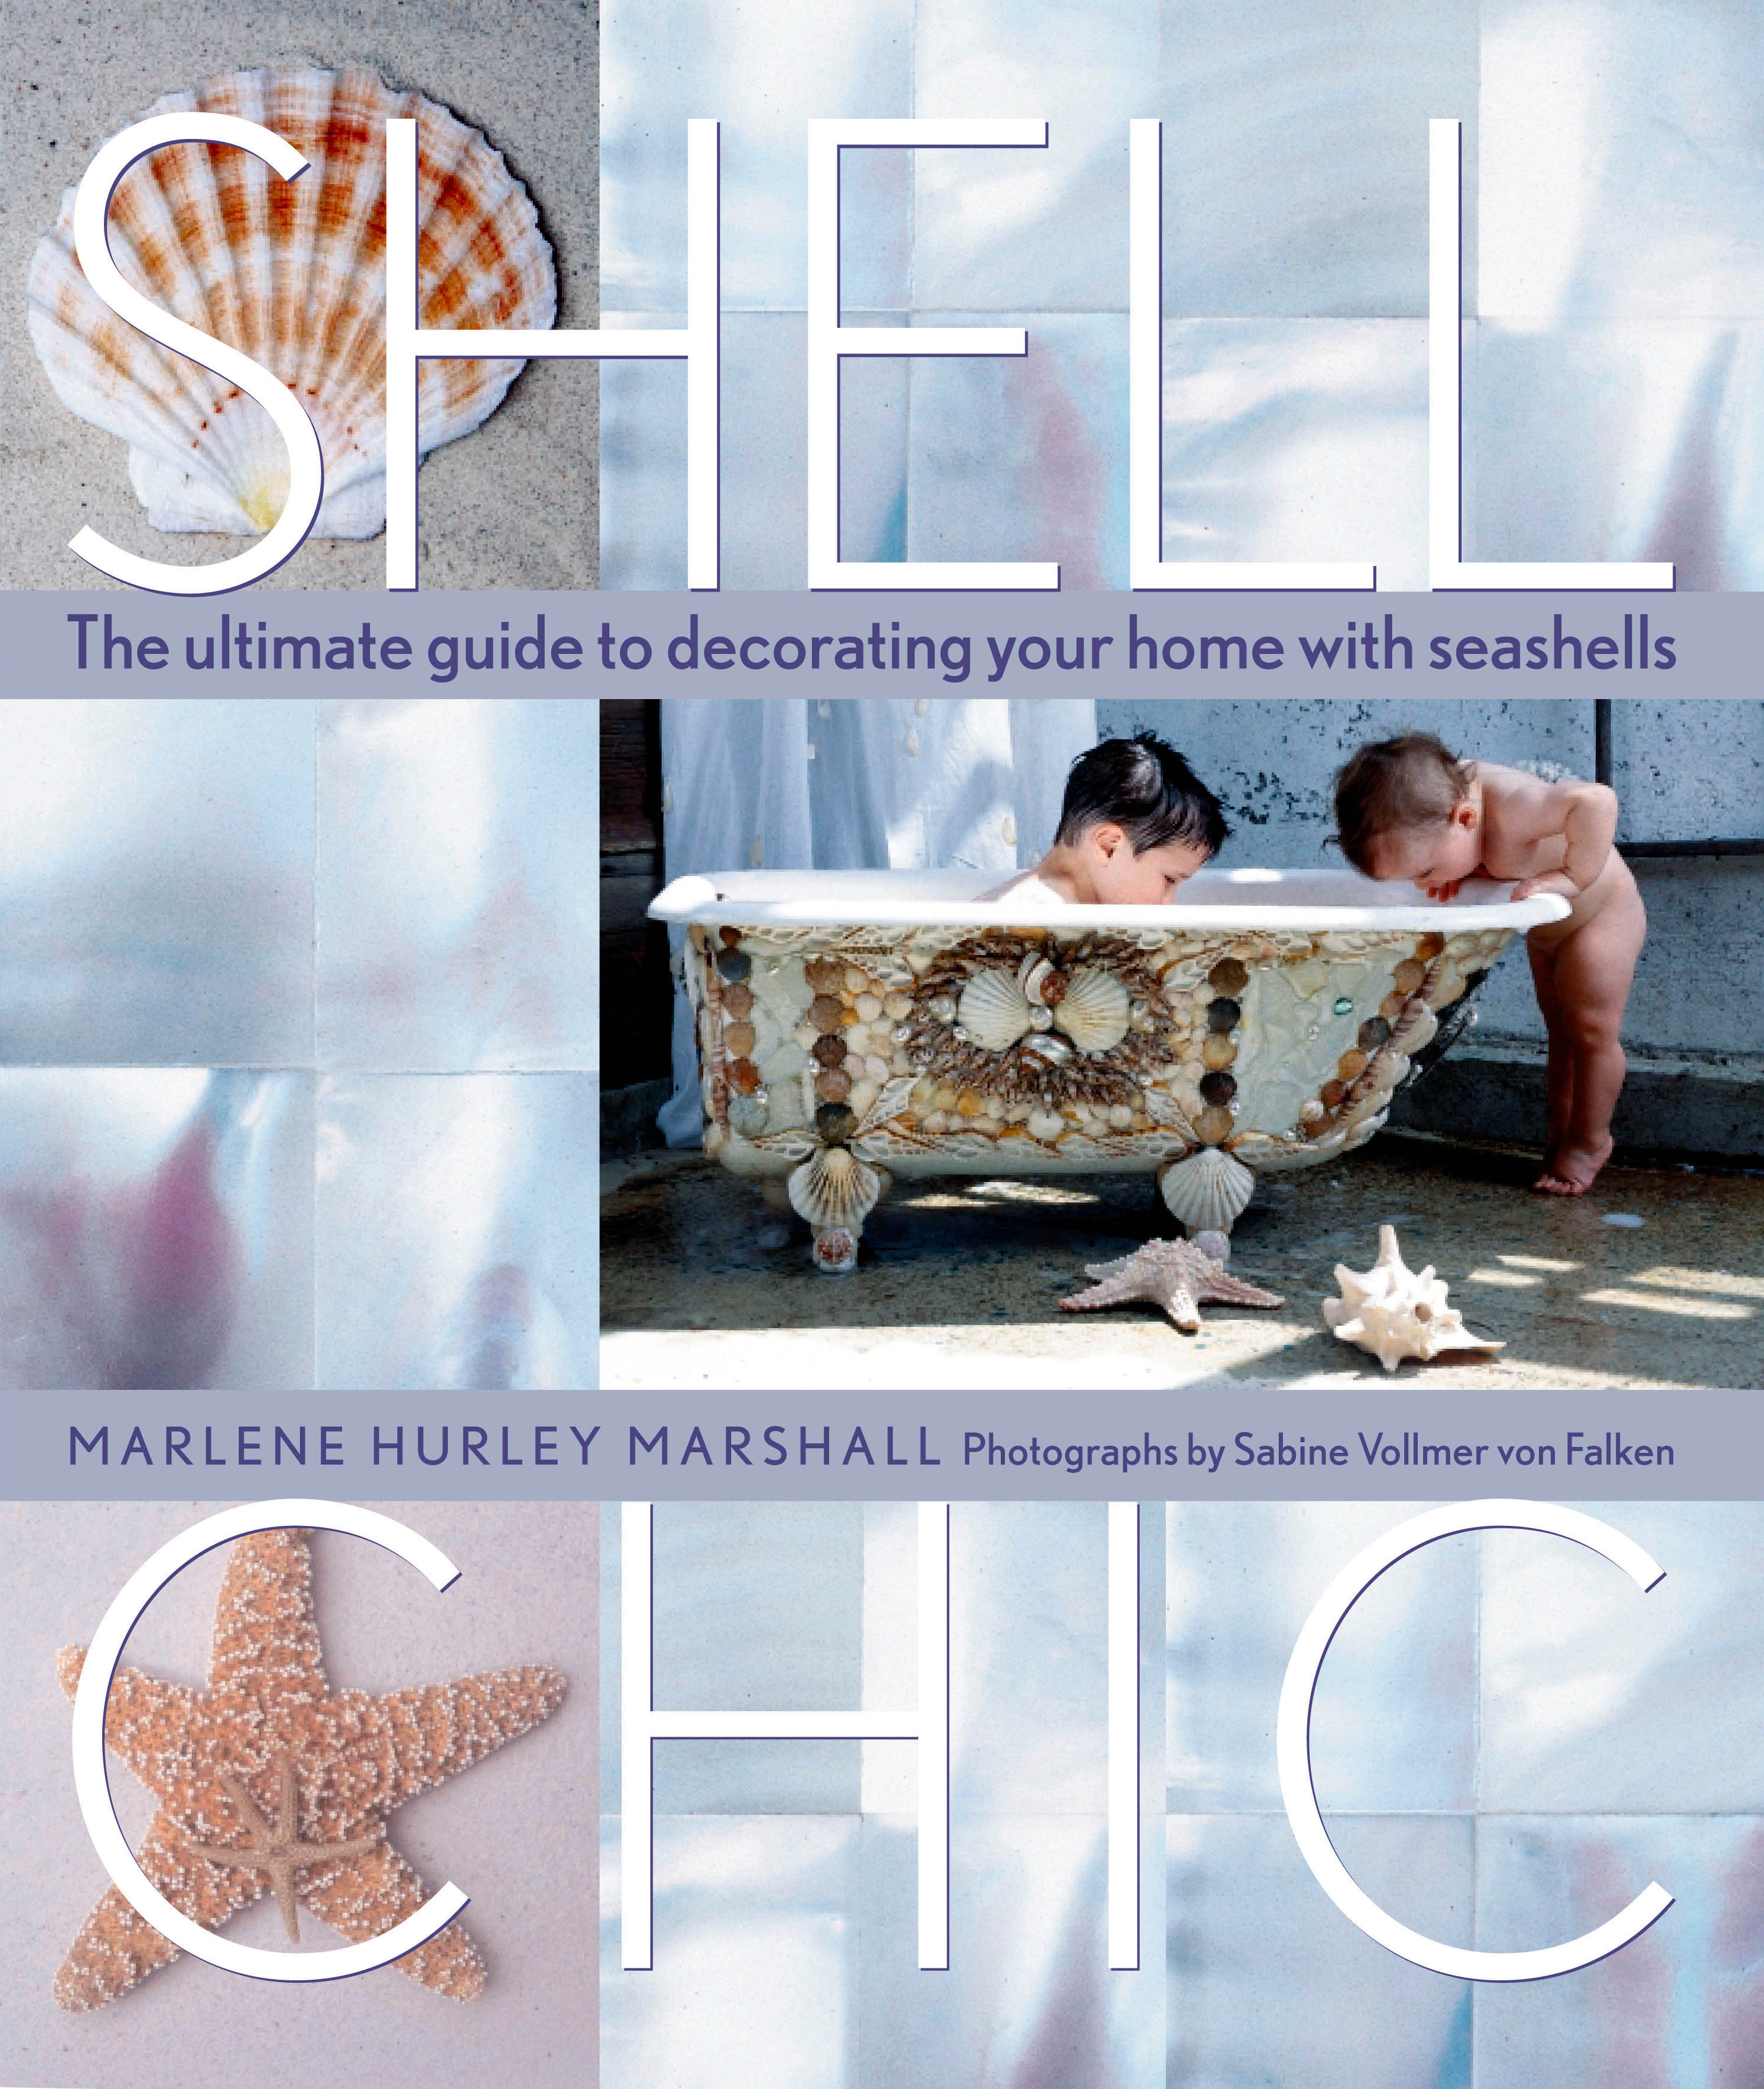 Shell Chic The Ultimate Guide to Decorating Your Home With Seashells - Marlene Hurley Marshall